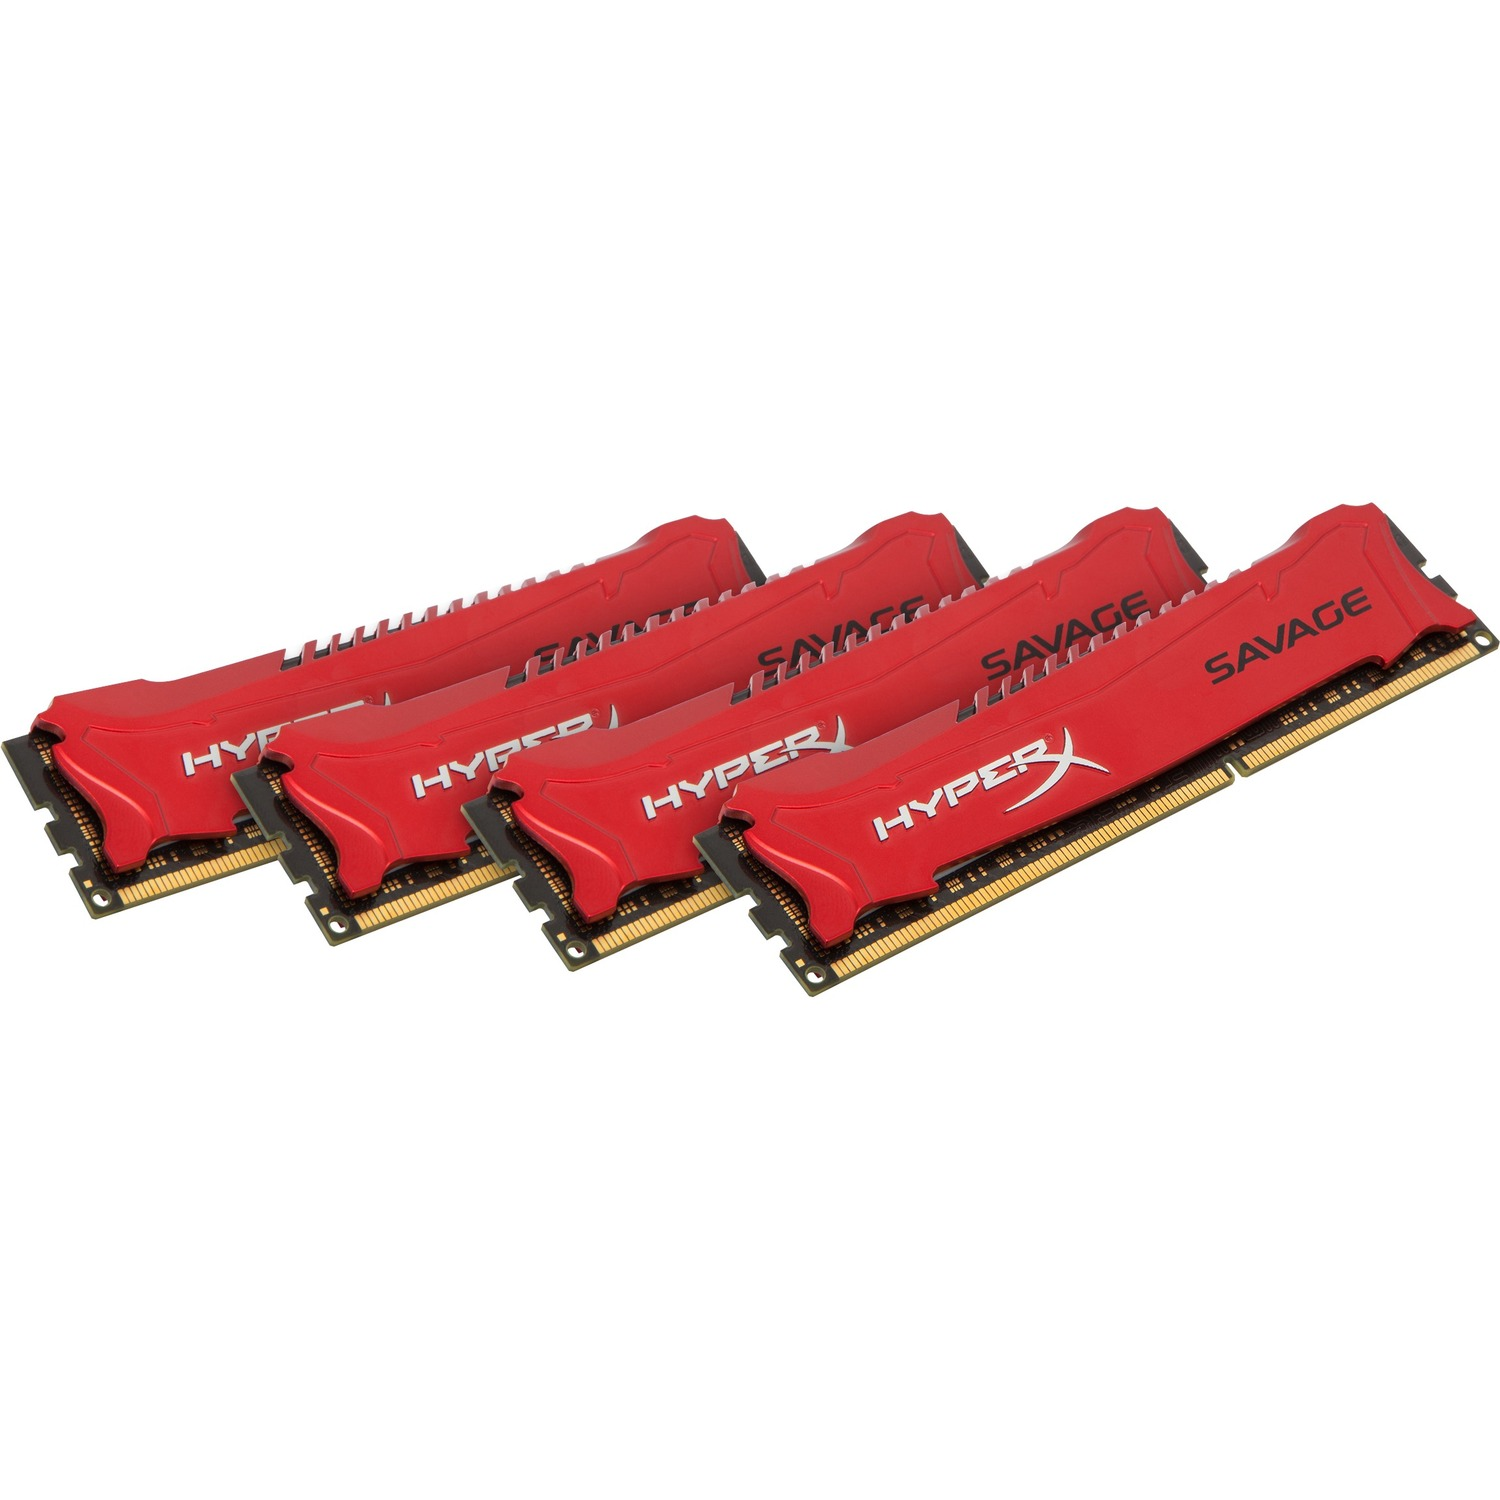 Kingston HyperX RAM Module - 32 GB 4 x 8 GB - DDR3 SDRAM - 1600 MHz DDR3-1600/PC3-12800